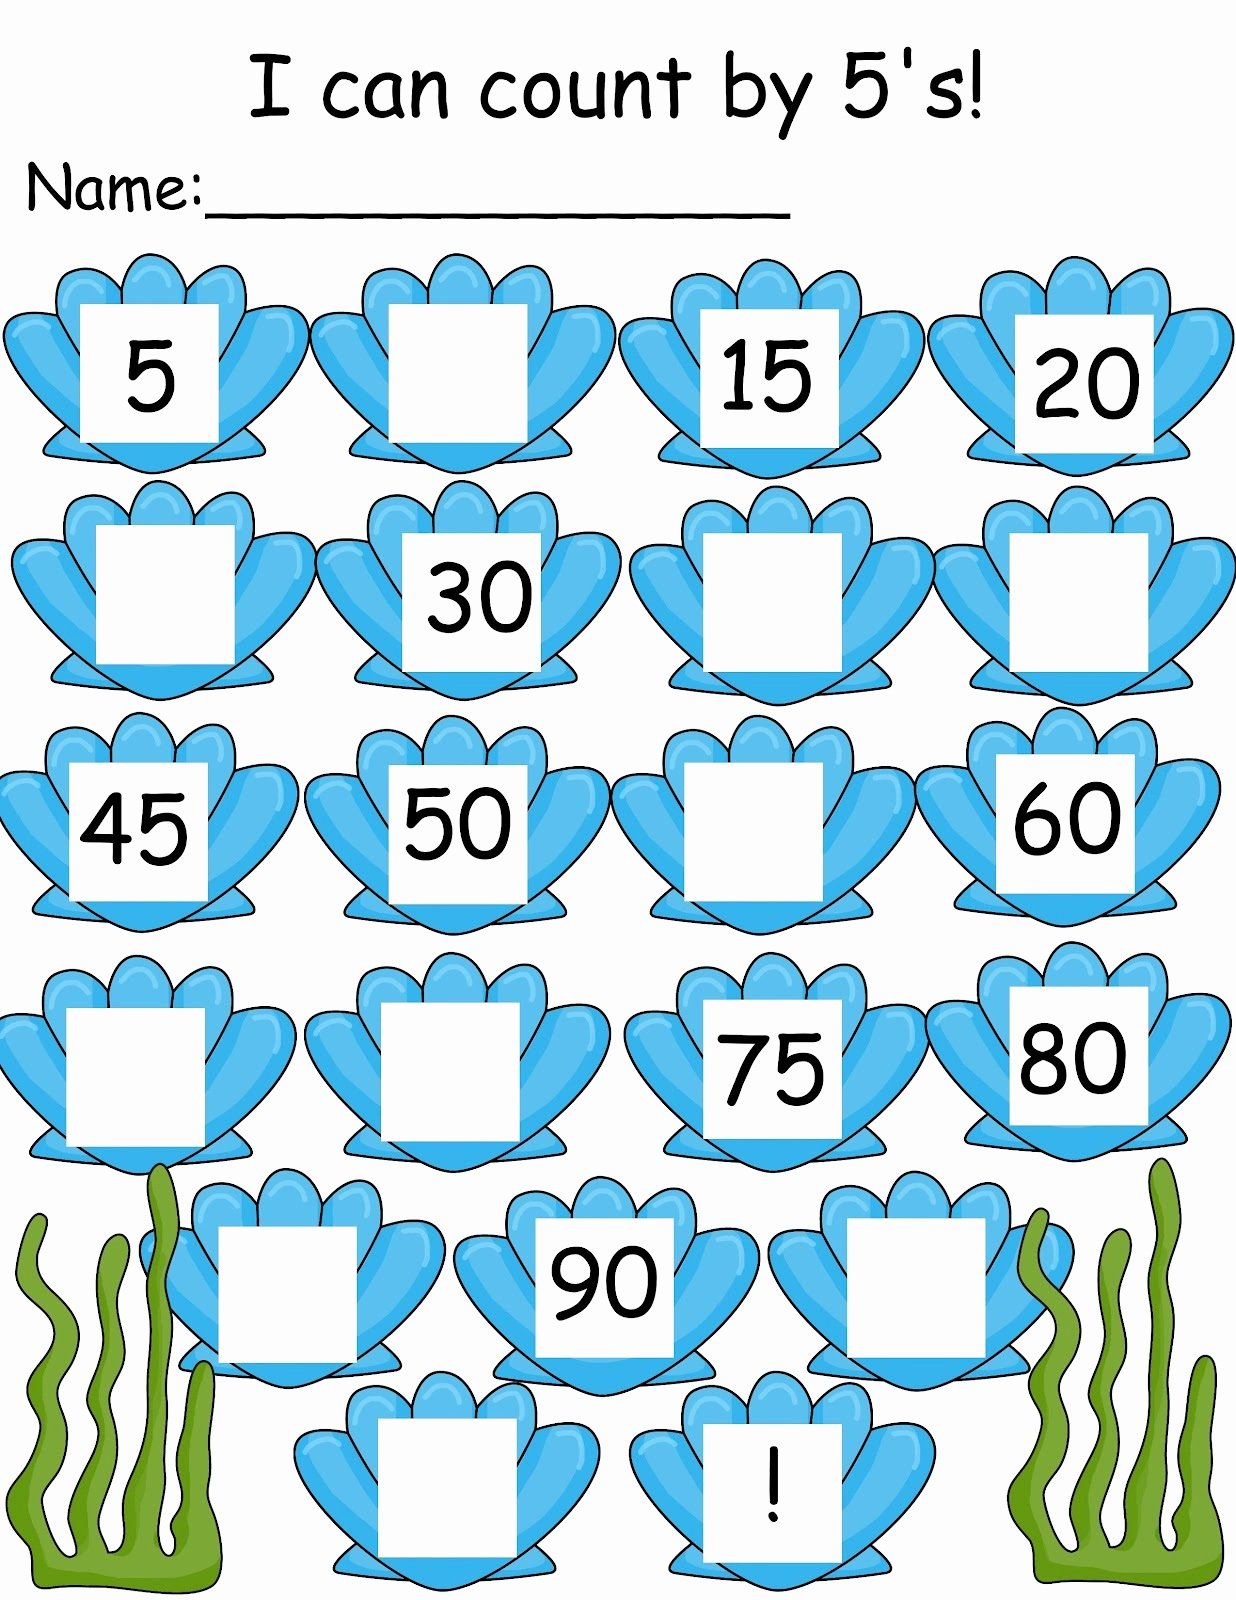 Counting By 5s Worksheet Beautiful Count By 5s Worksheets